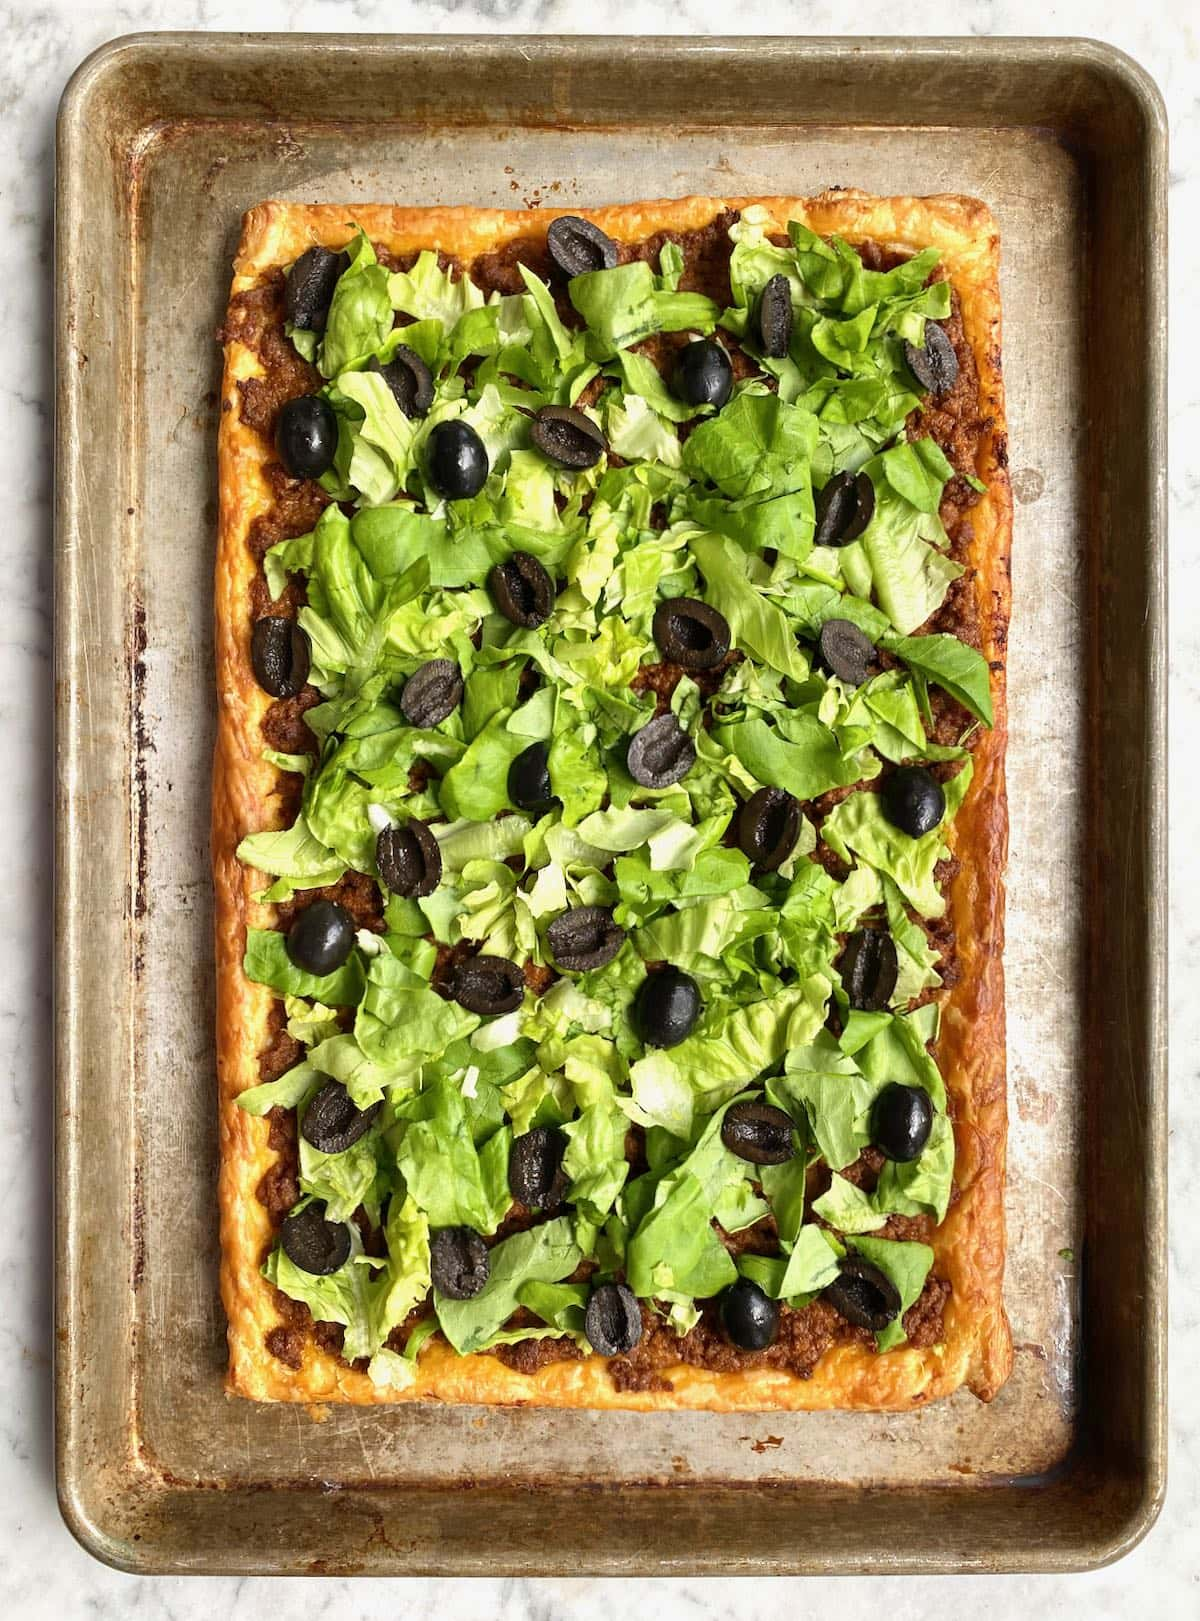 pastry crust topped with lettuce and olives on a sheet pan